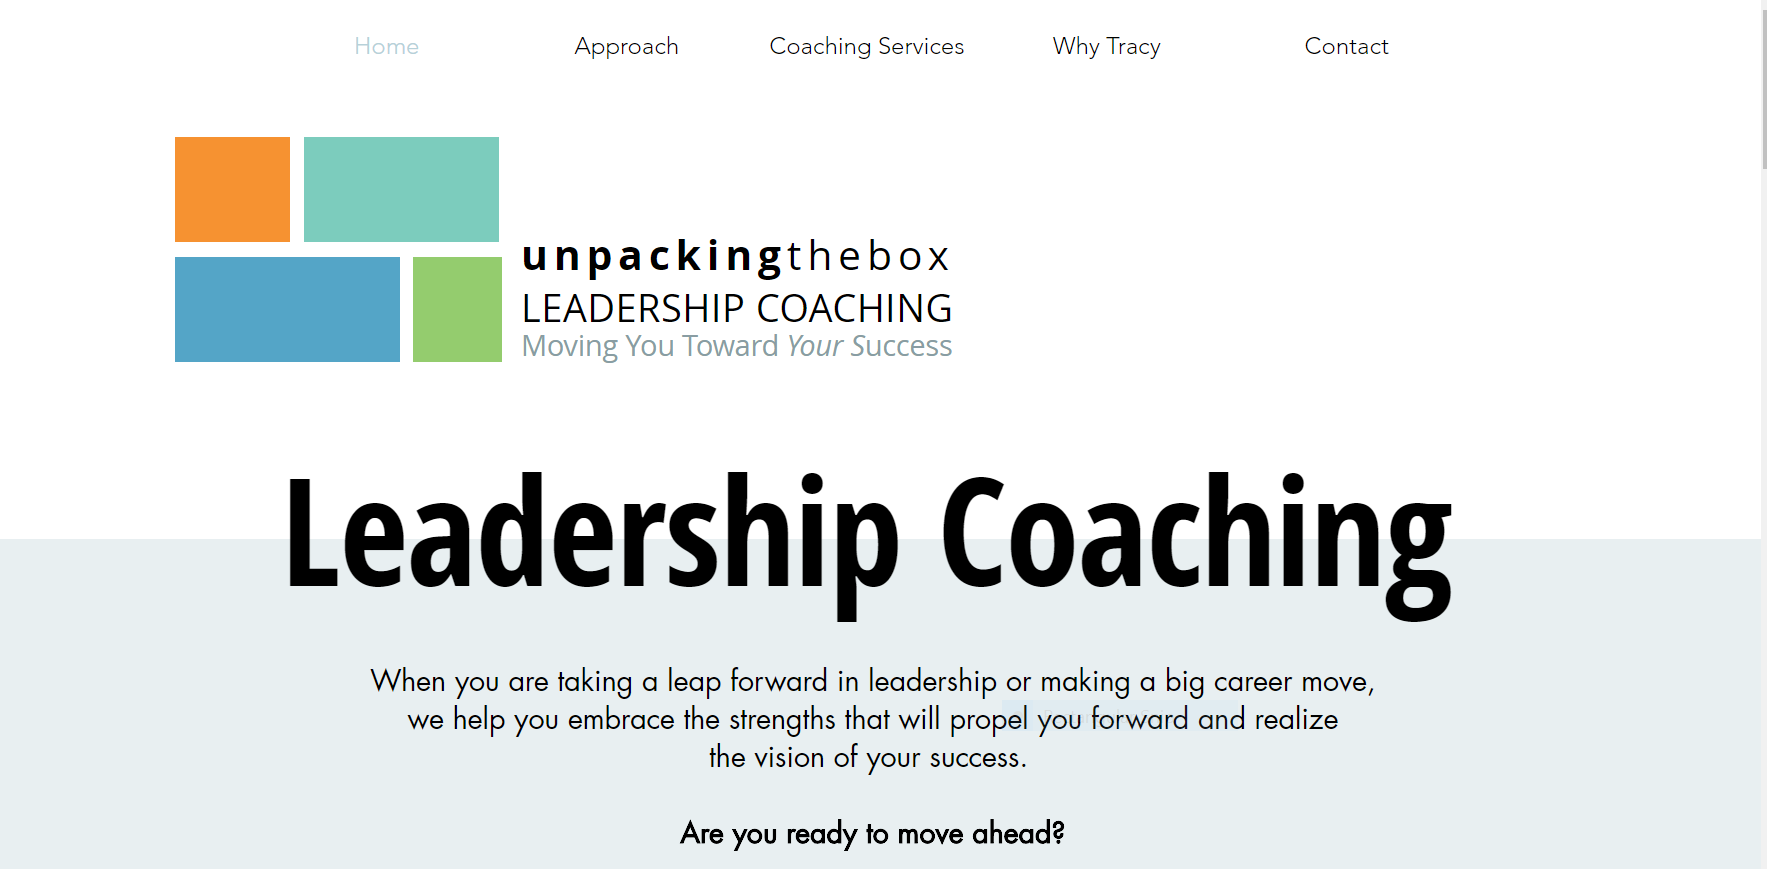 unpackingthebox leadership coaching